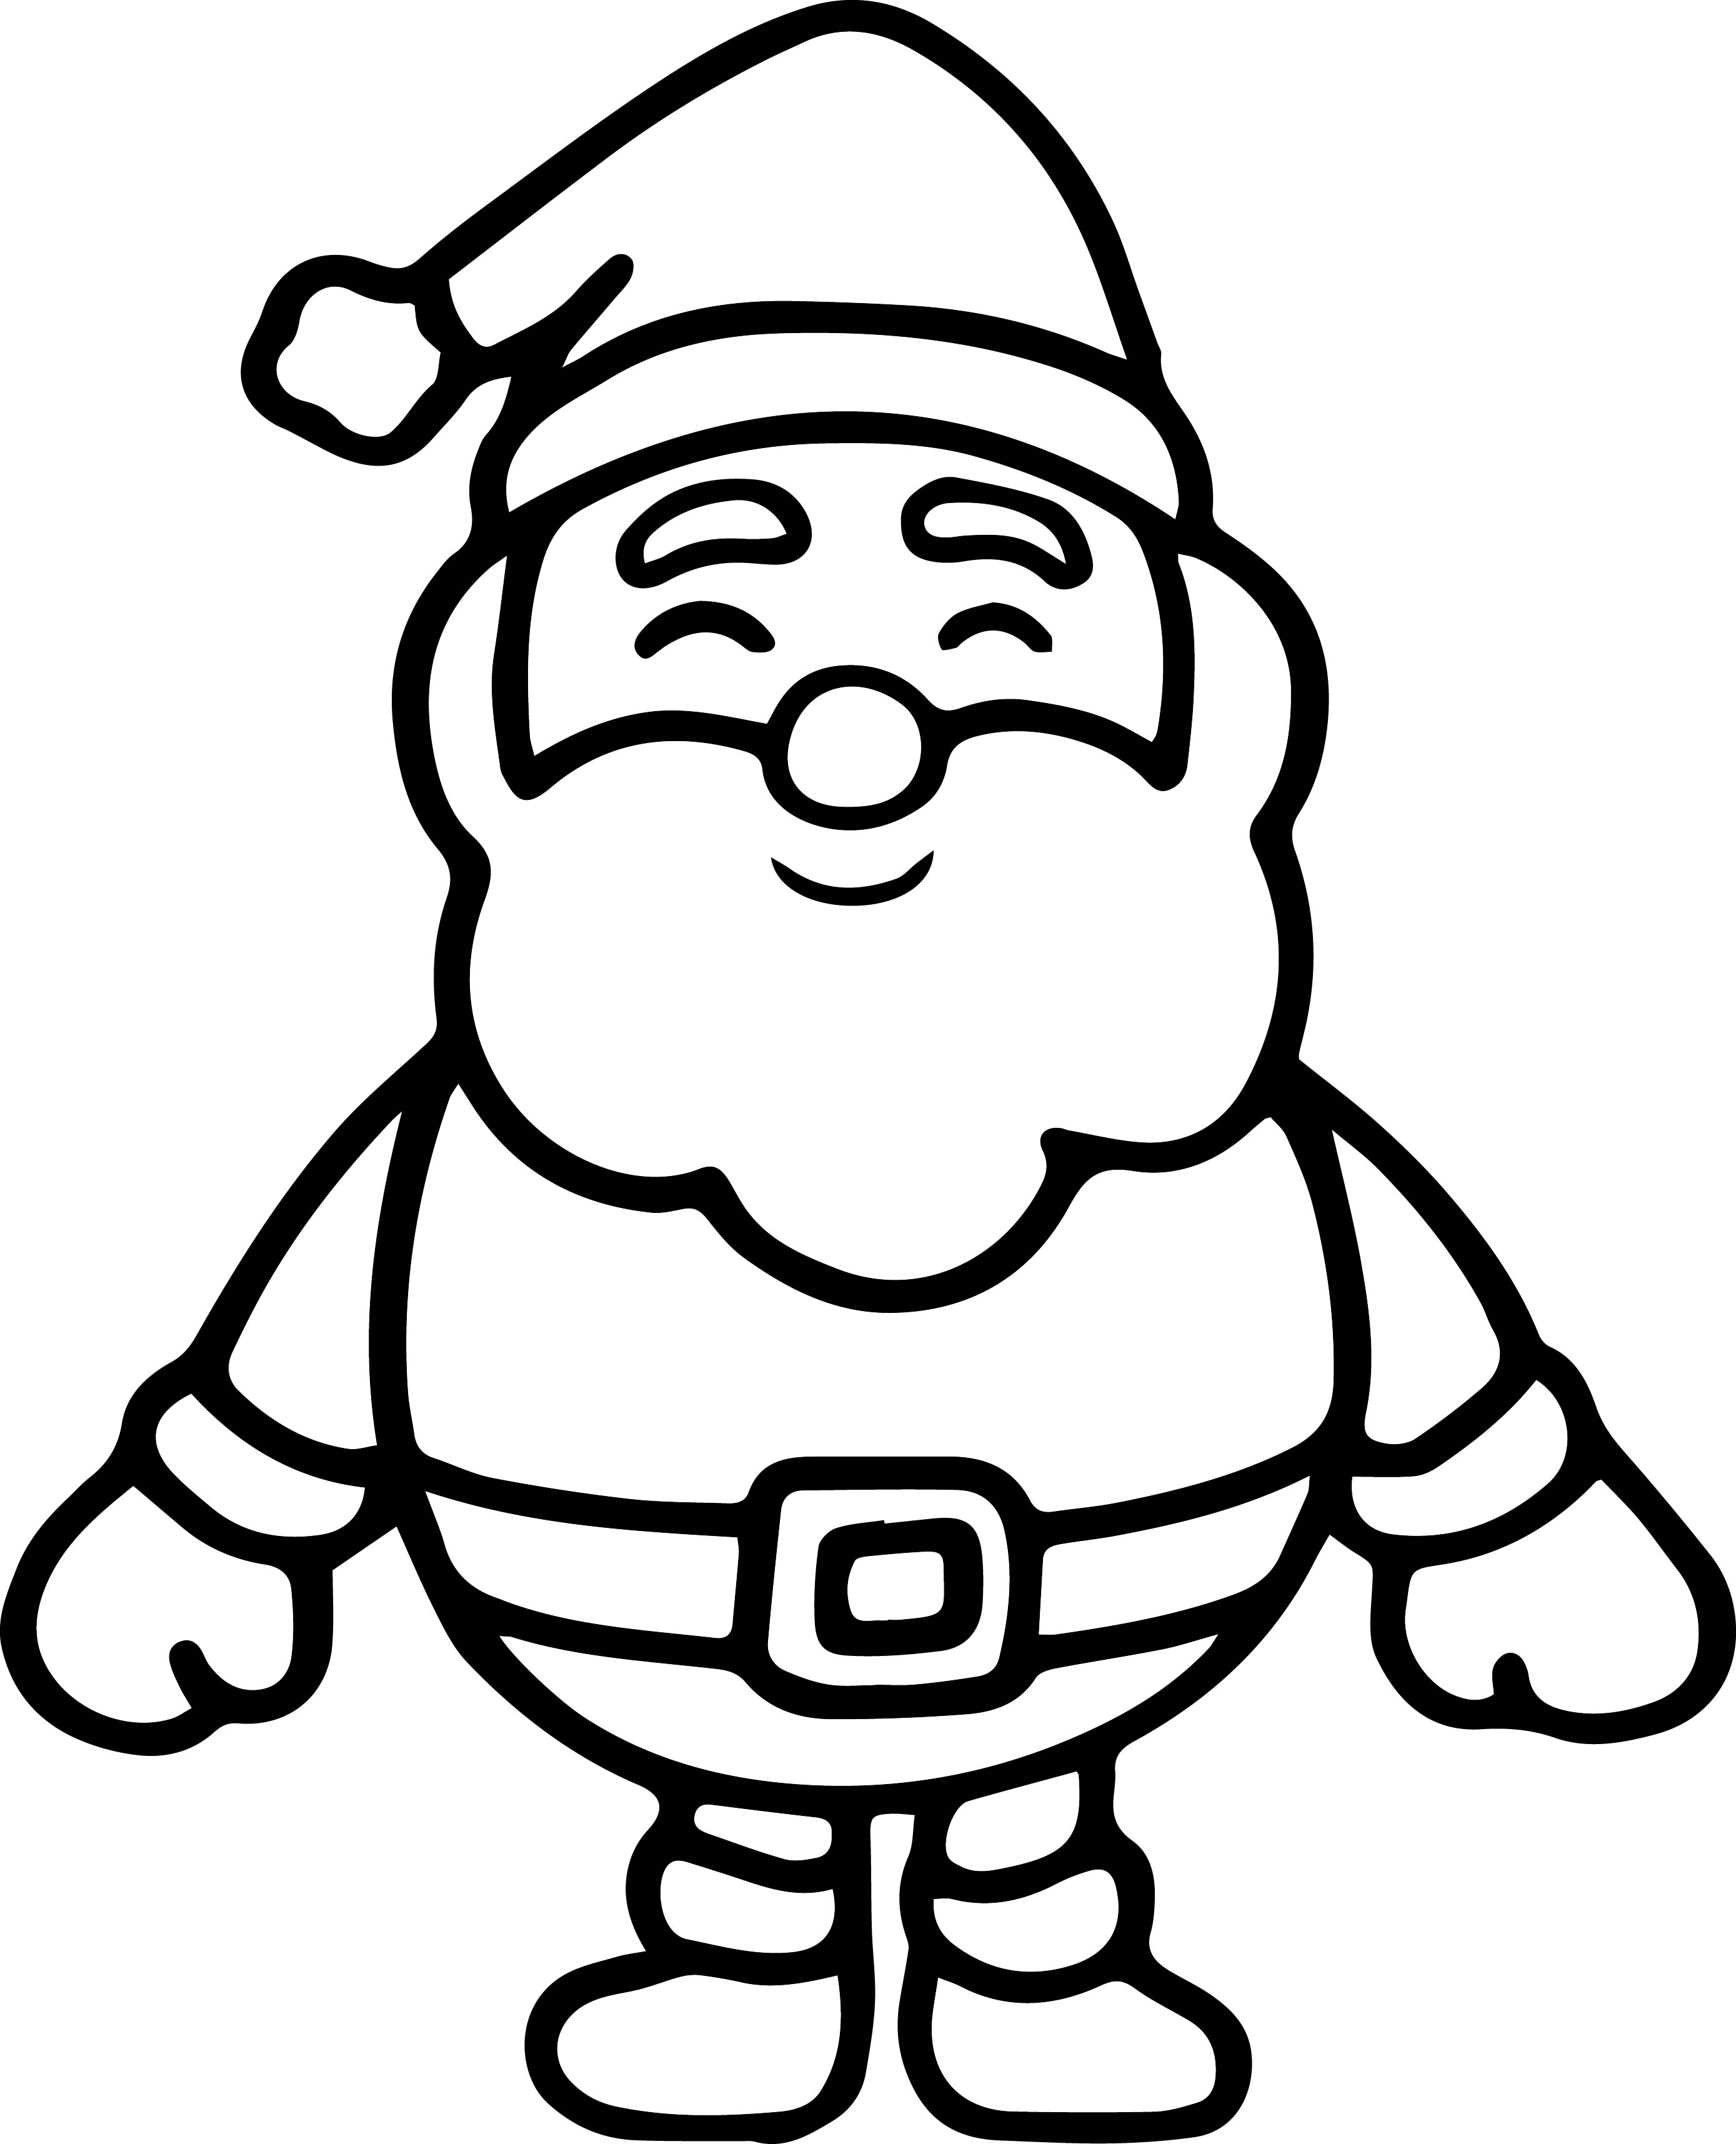 Santa Claus Very Cute Small Coloring Page